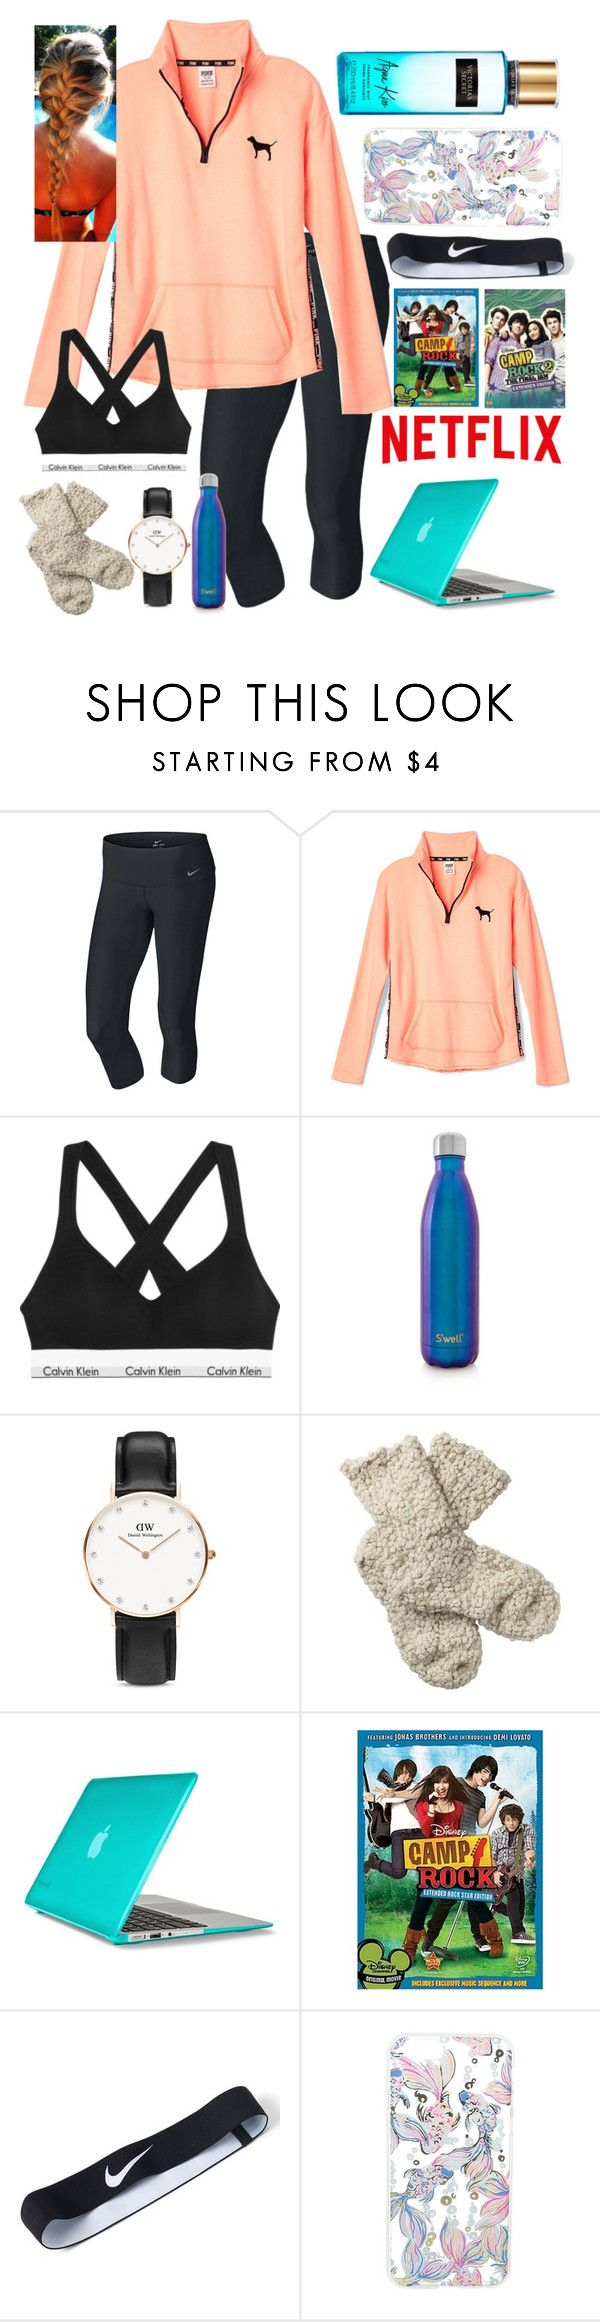 """""""Home sick watching old Disney movies"""" by bowhunter1498702 ❤ liked on Polyvore featuring NIKE, Victoria's Secret PINK, Calvin Klein Underwear, S'well, Daniel Wellington, Fat Face, Speck, Lilly Pulitzer and Victoria's Secret"""